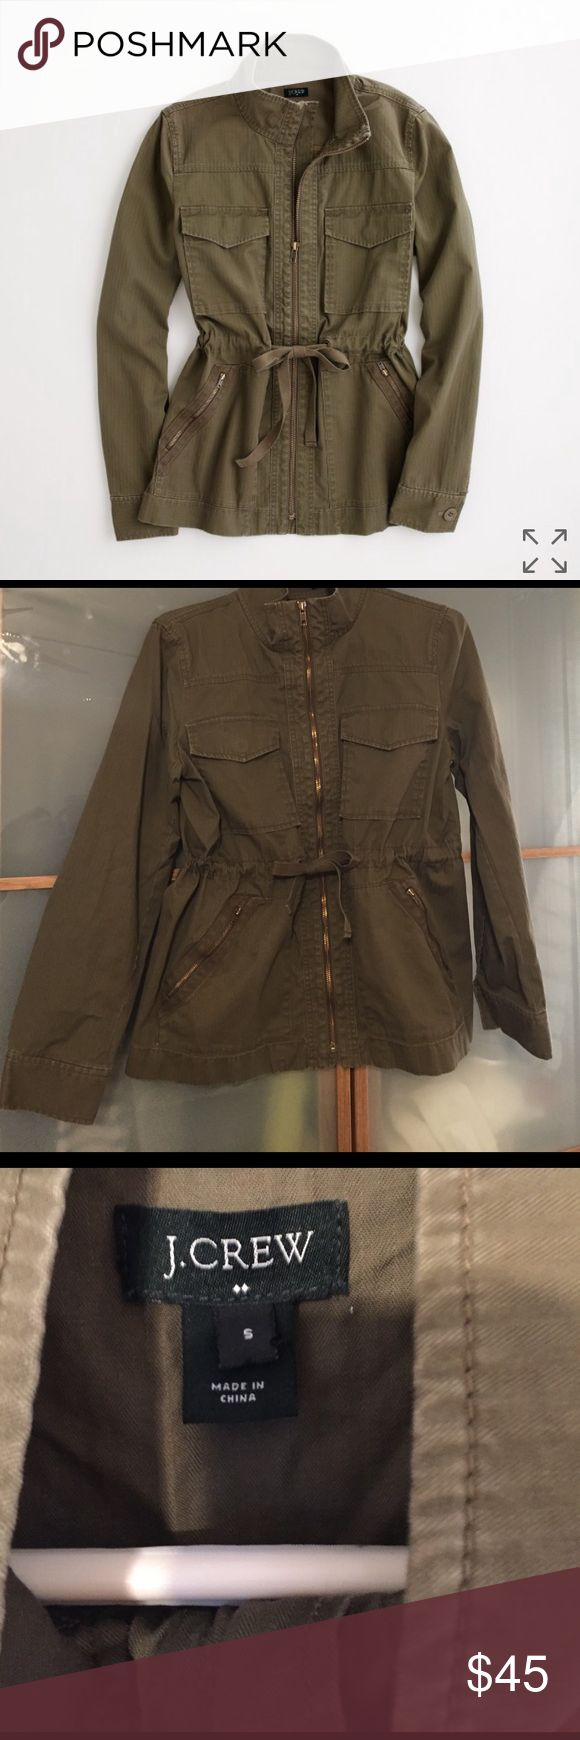 J.crew military jacket size small Olive green military jacket size small. Perfect for spring! Gently used. Good condition. Barely noticeable small stain on right side pocket. J. Crew Jackets & Coats